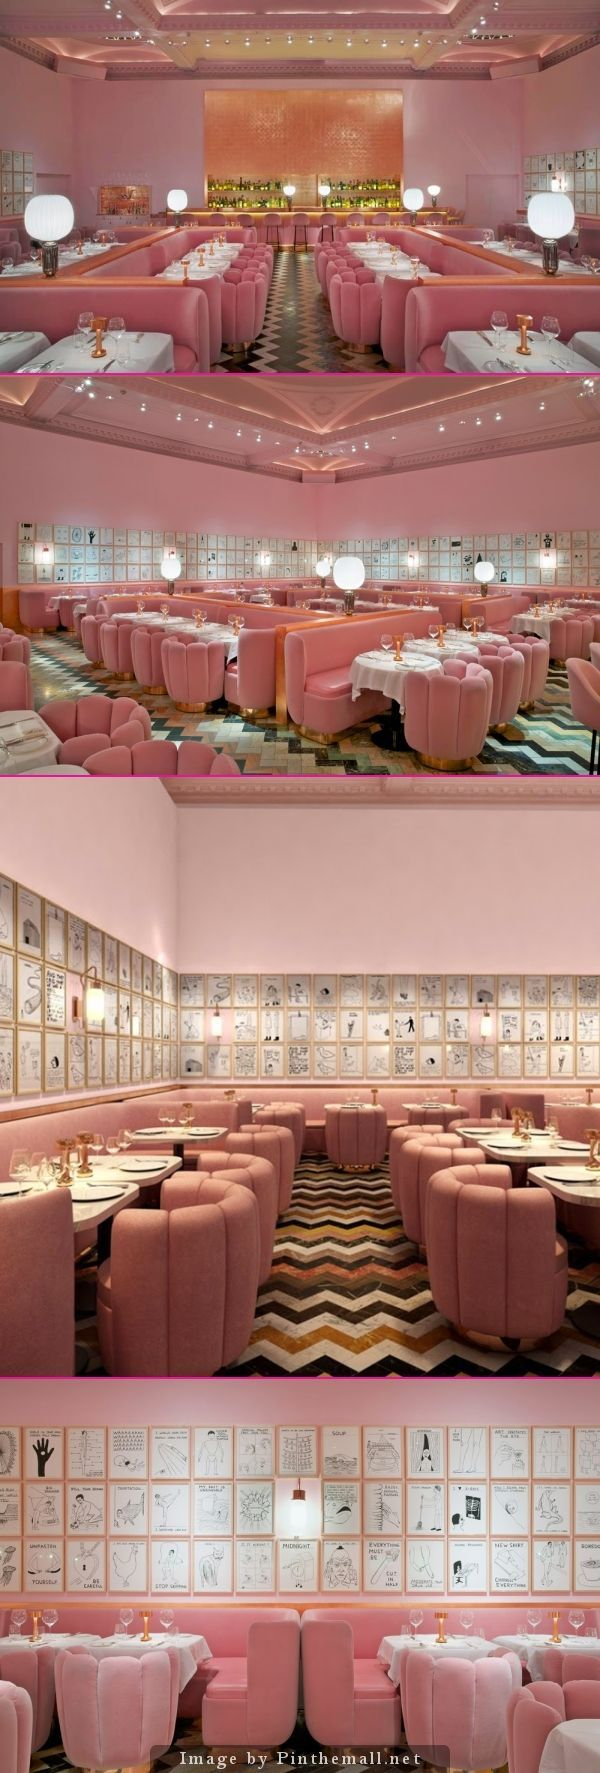 2014 - New London restaurant, Gallery at Sketch, with interiors by India Mahdavi and art by Scottish artist David Shrigley. Loving those zig-zag floors...and actually the combination of pink and brass is not too shabby either. Whould've thought!